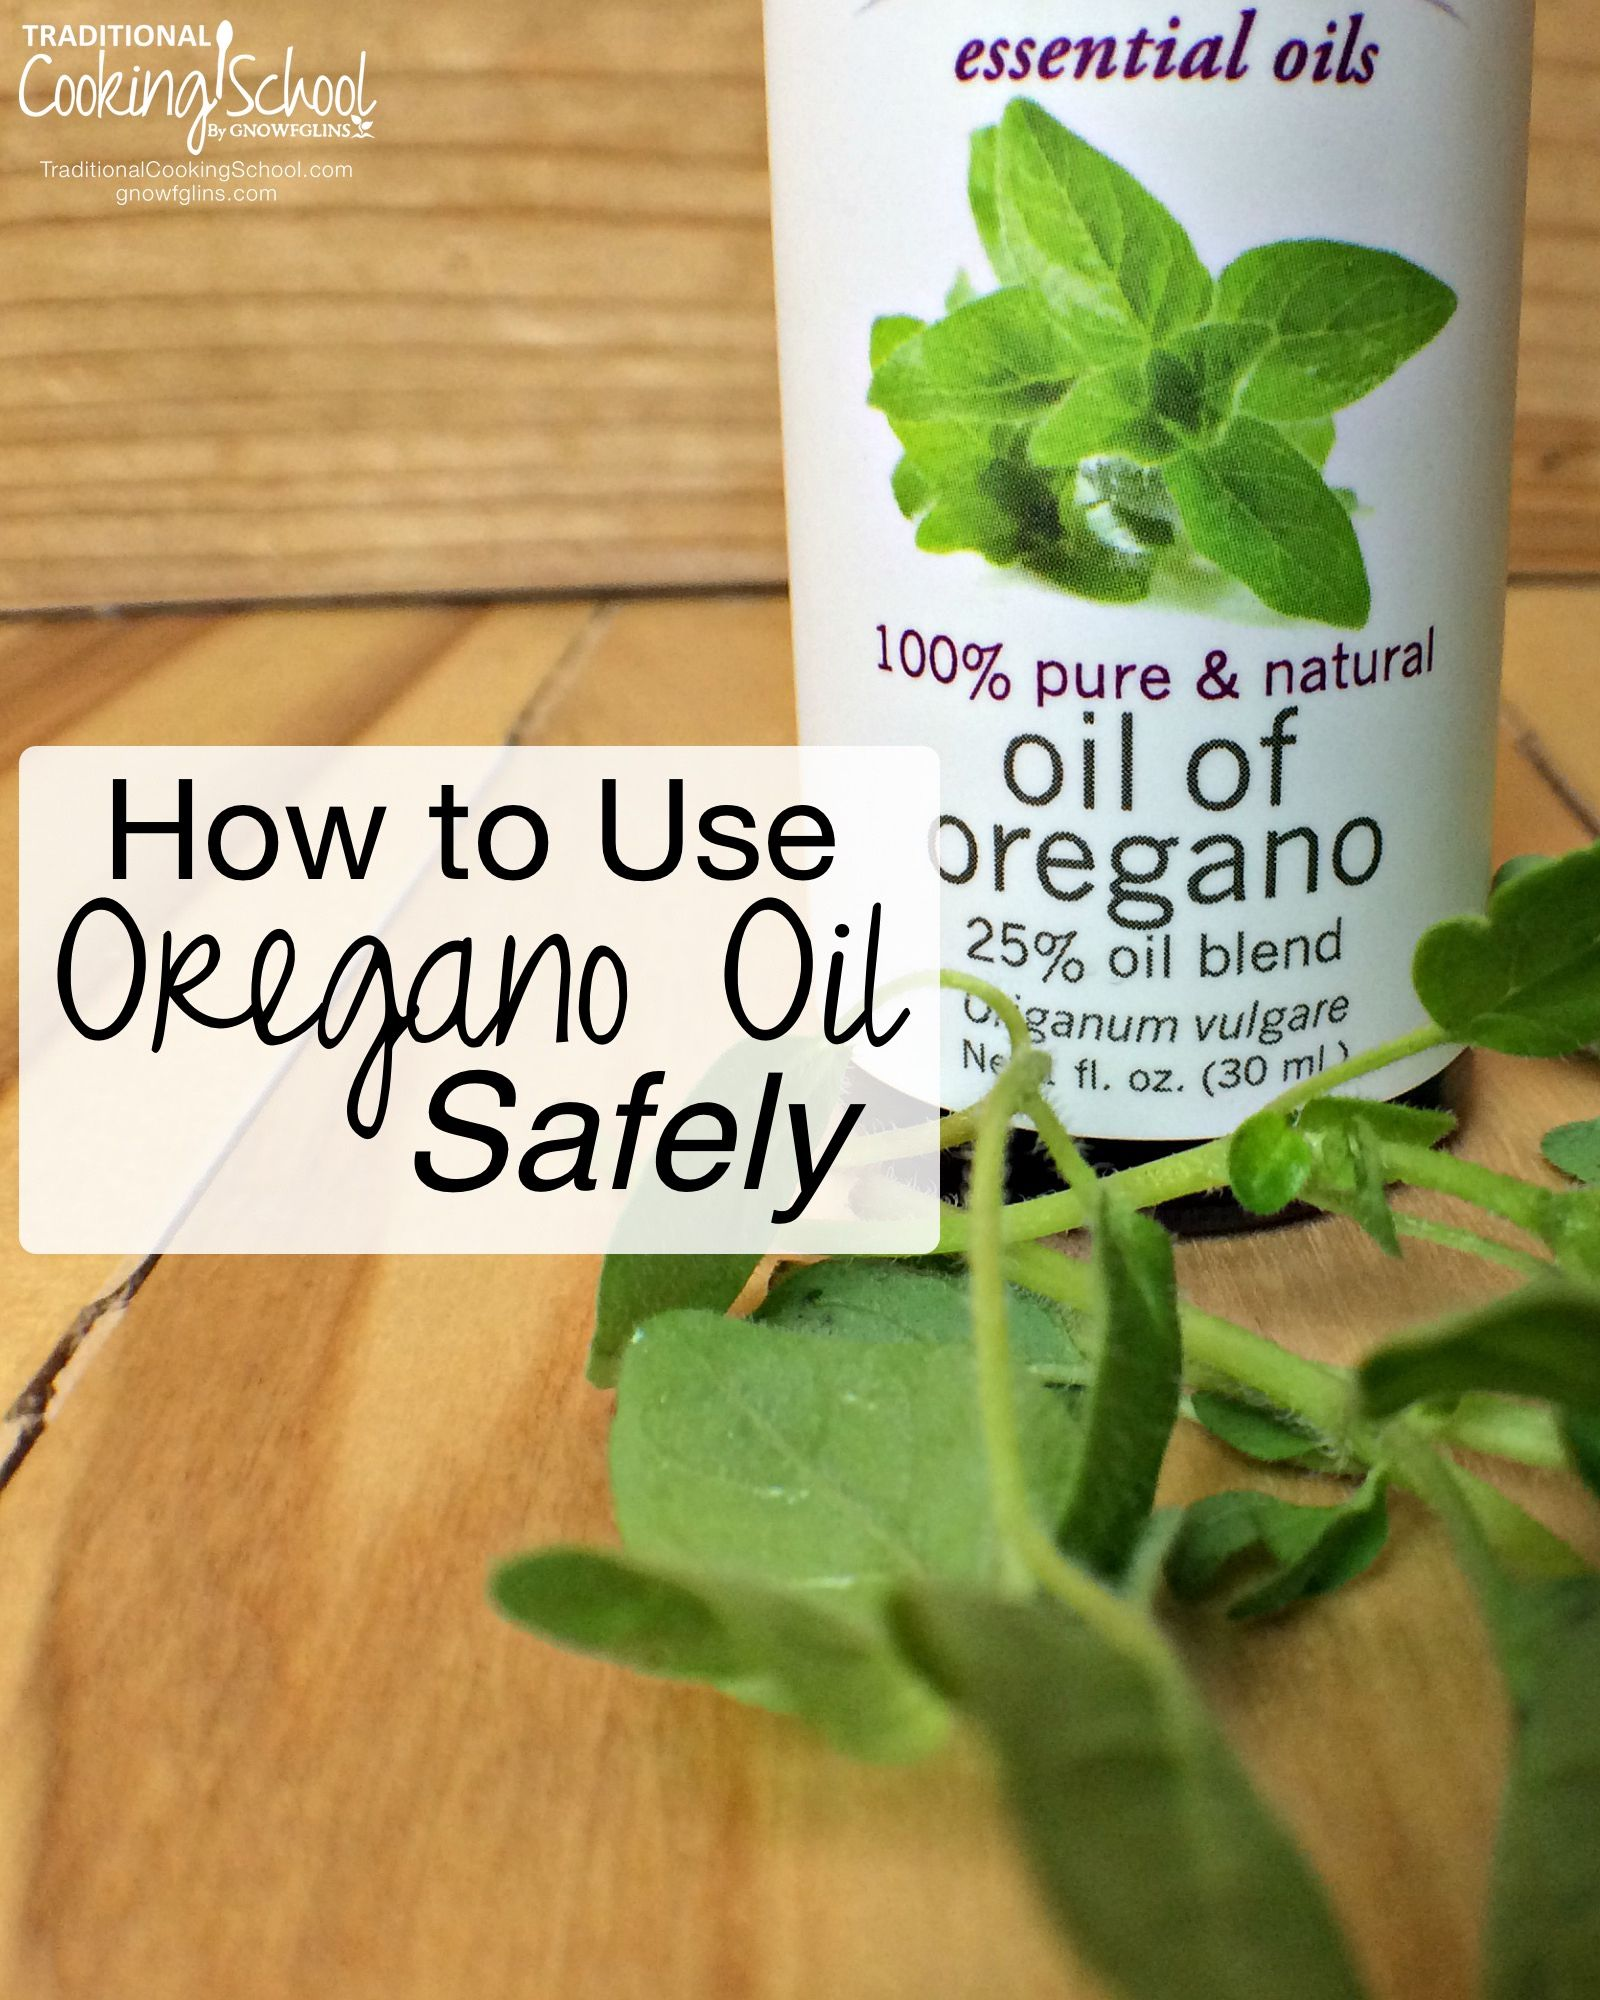 How to Use Oregano Oil advise